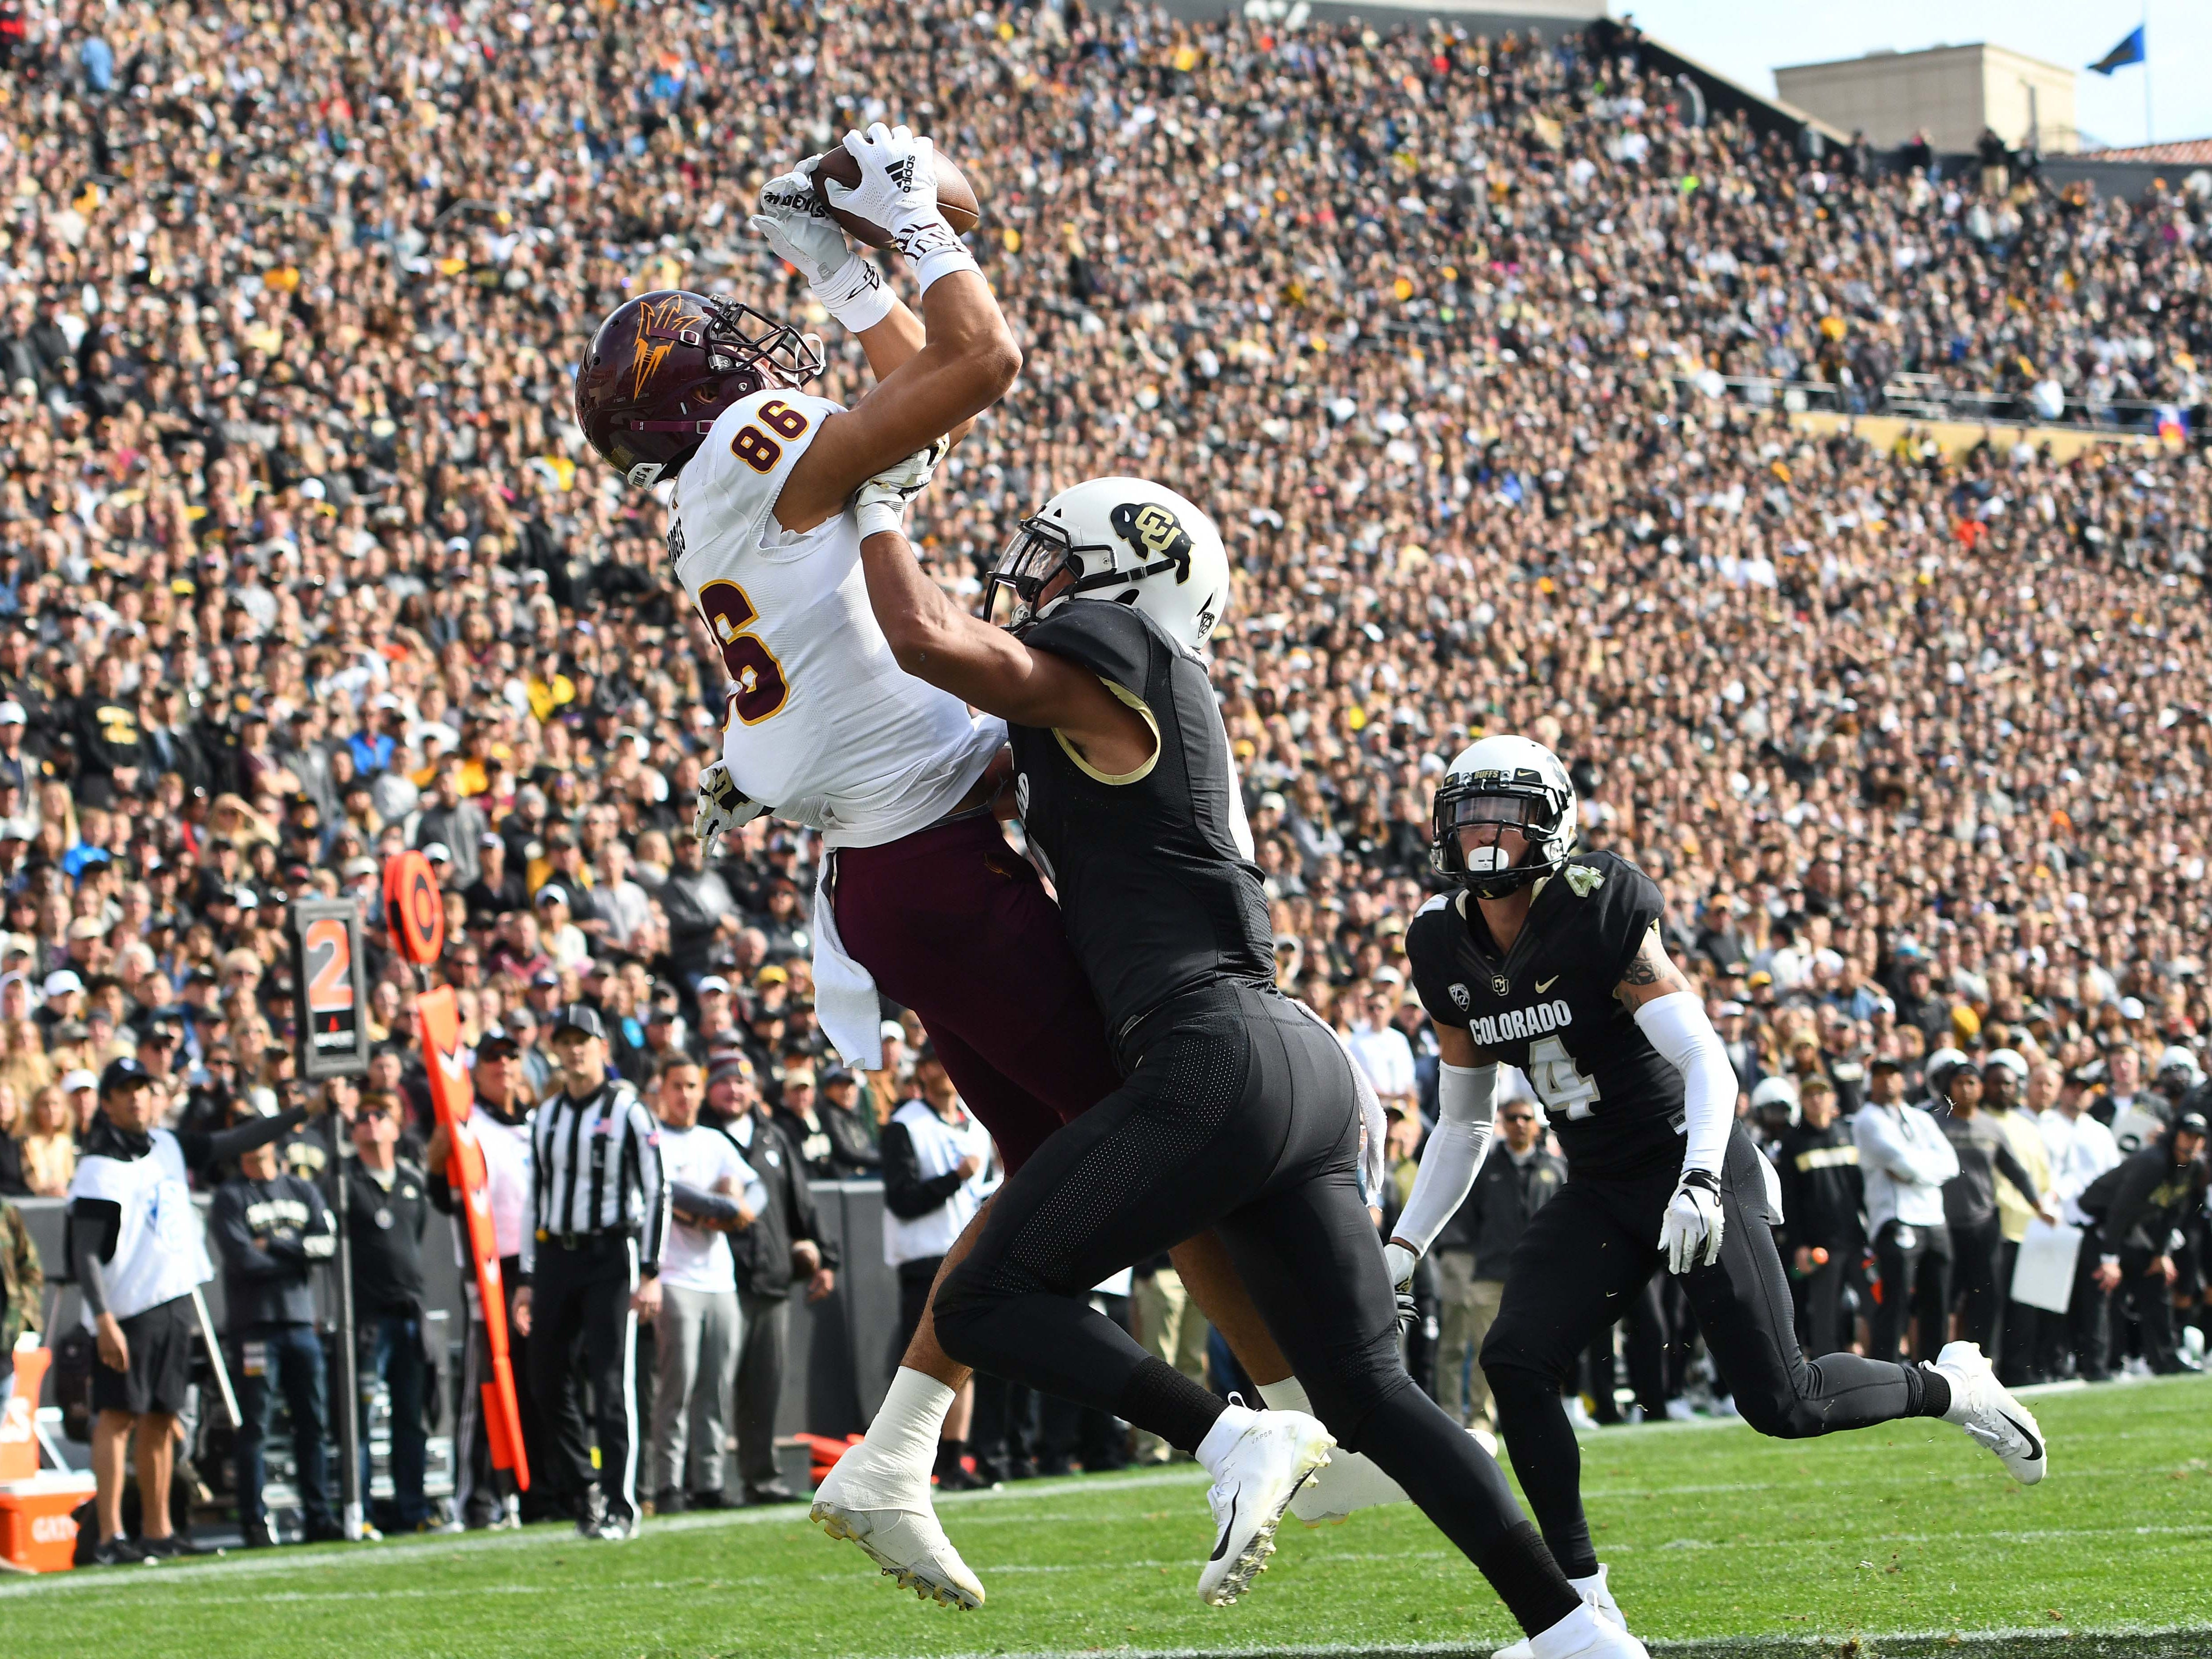 Arizona State Sun Devils wide receiver Tannor Park touchdown reception attempt is broken up by Colorado Buffaloes defensive back Evan Worthington in the second quarter at Folsom Field.